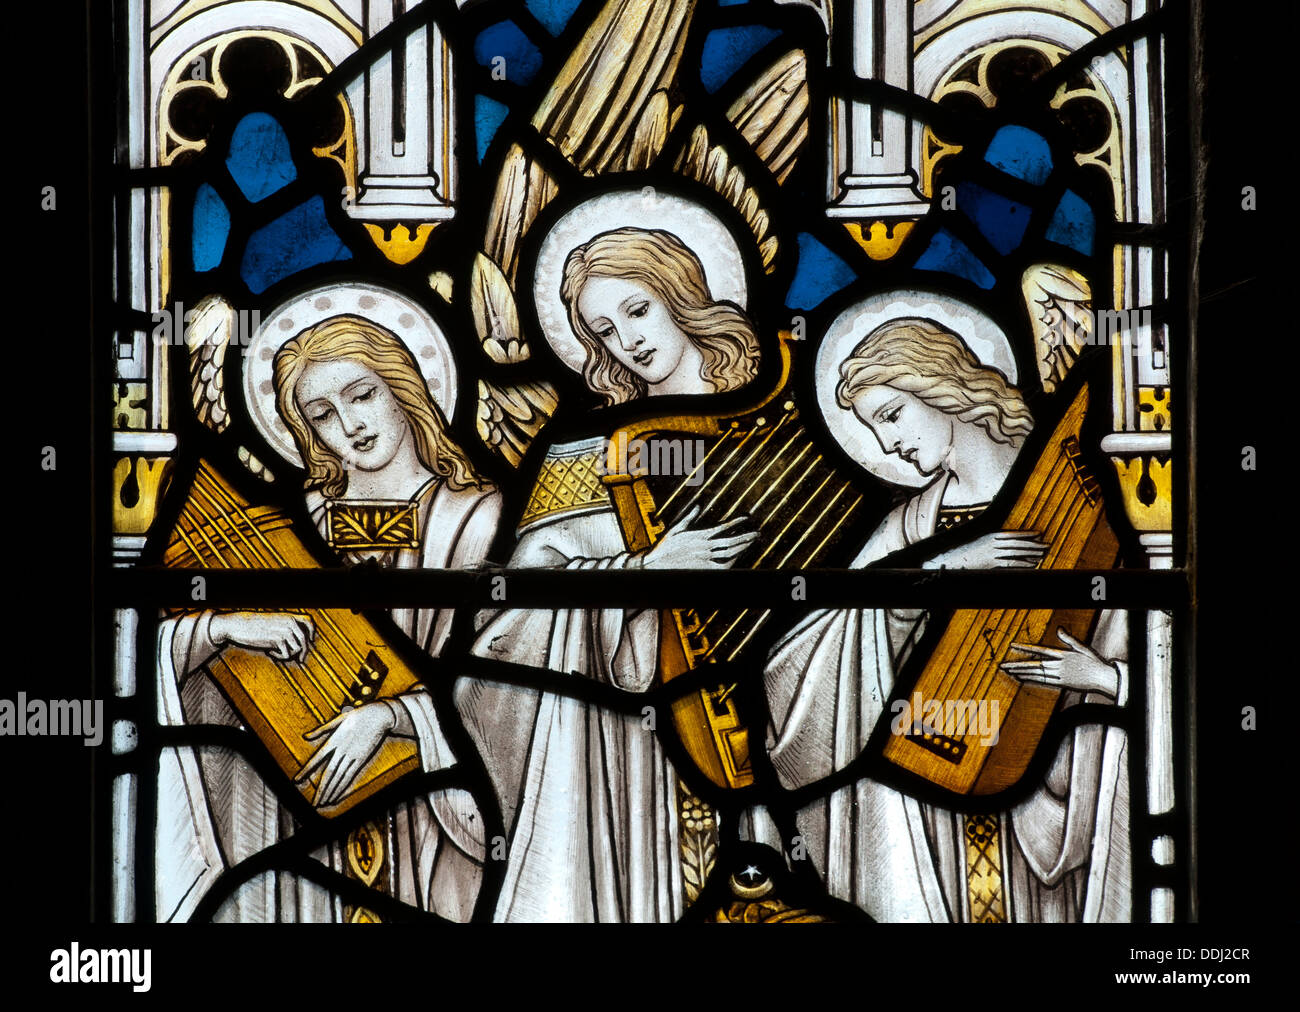 Angel musicians stained glass, St. Laurence`s Church, Wyck Rissington, Gloucestershire, England, UK - Stock Image